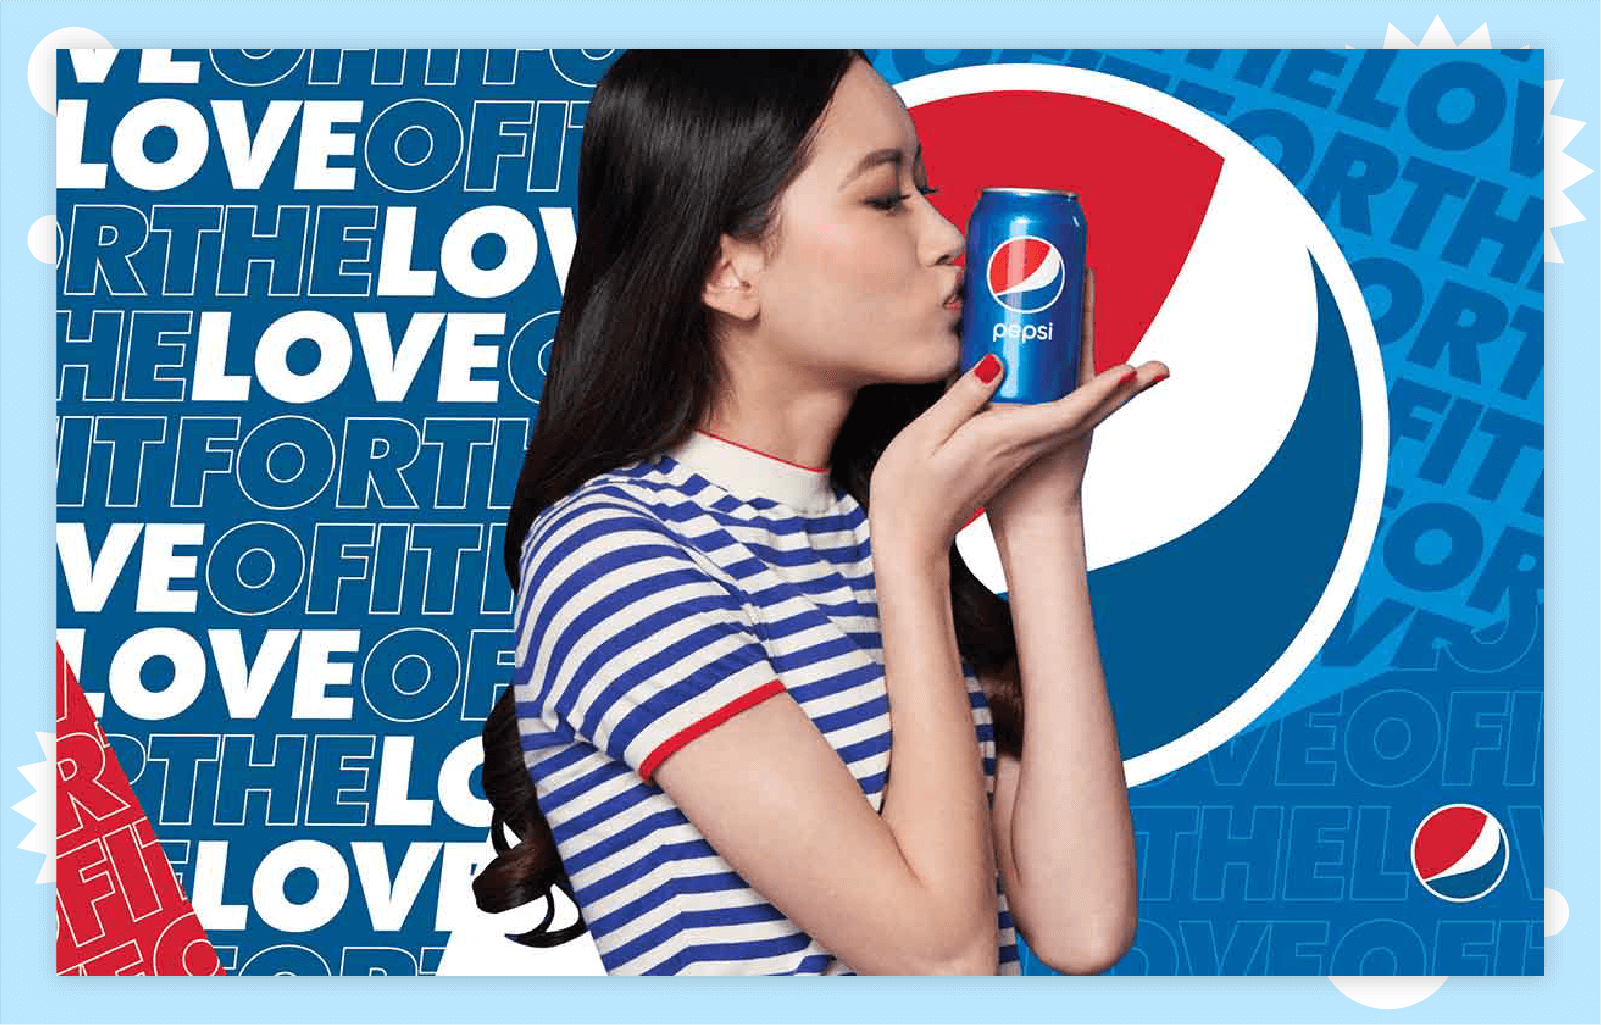 Pepsi relationship marketing involves brand identity